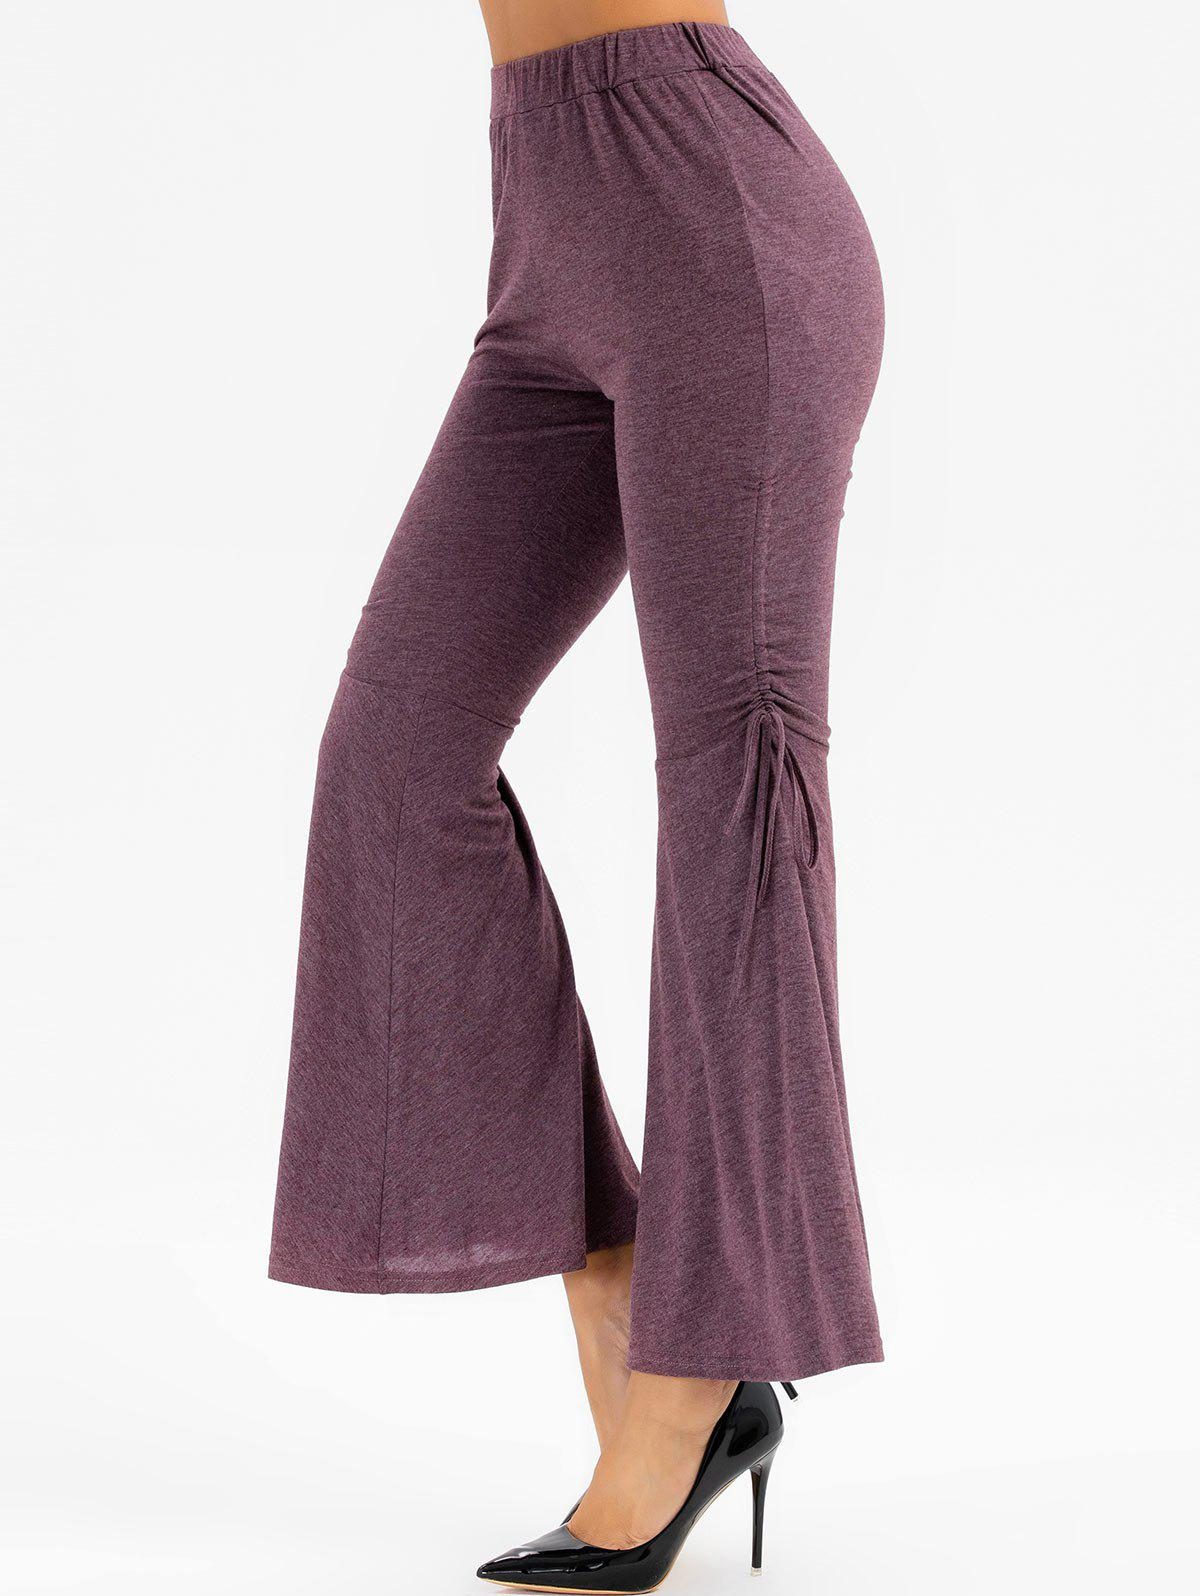 Chiné taille haute Cinched Flare Pants - Marron Velours 3XL